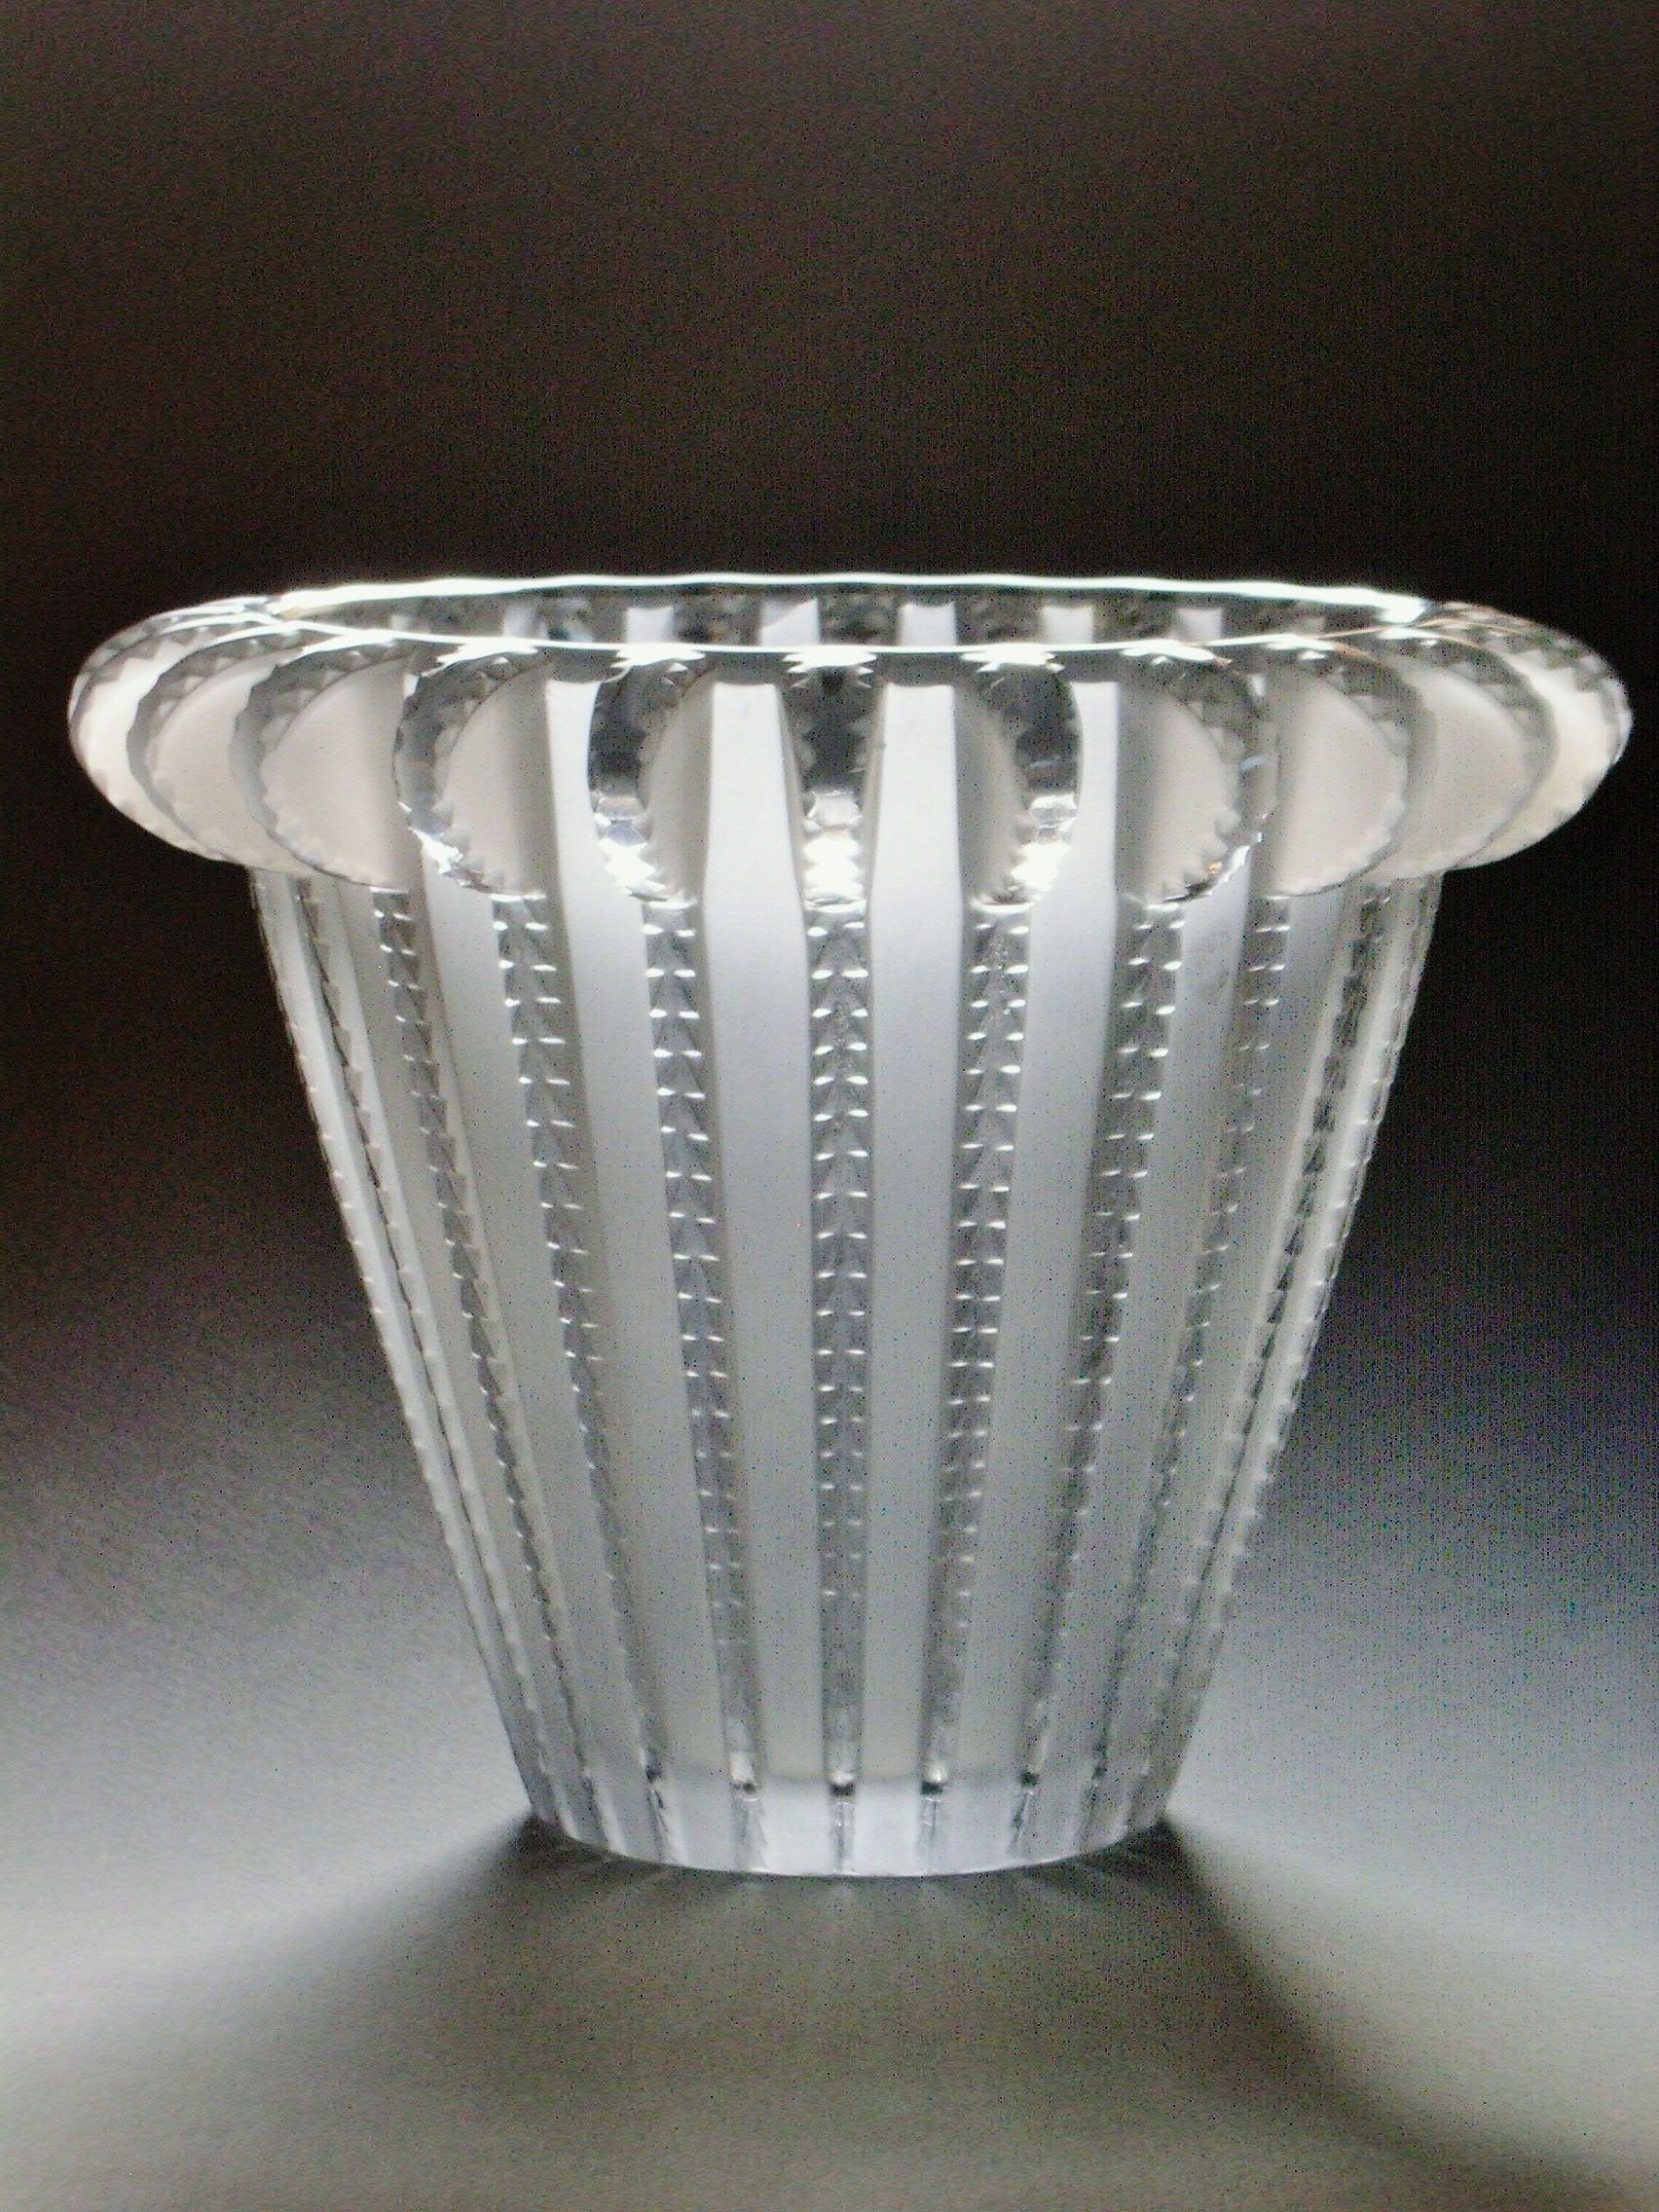 Wholesale Floor Vases Of 50 Smoked Glass Vase the Weekly World Pertaining to Vase Royat Rene Lalique Art Glass